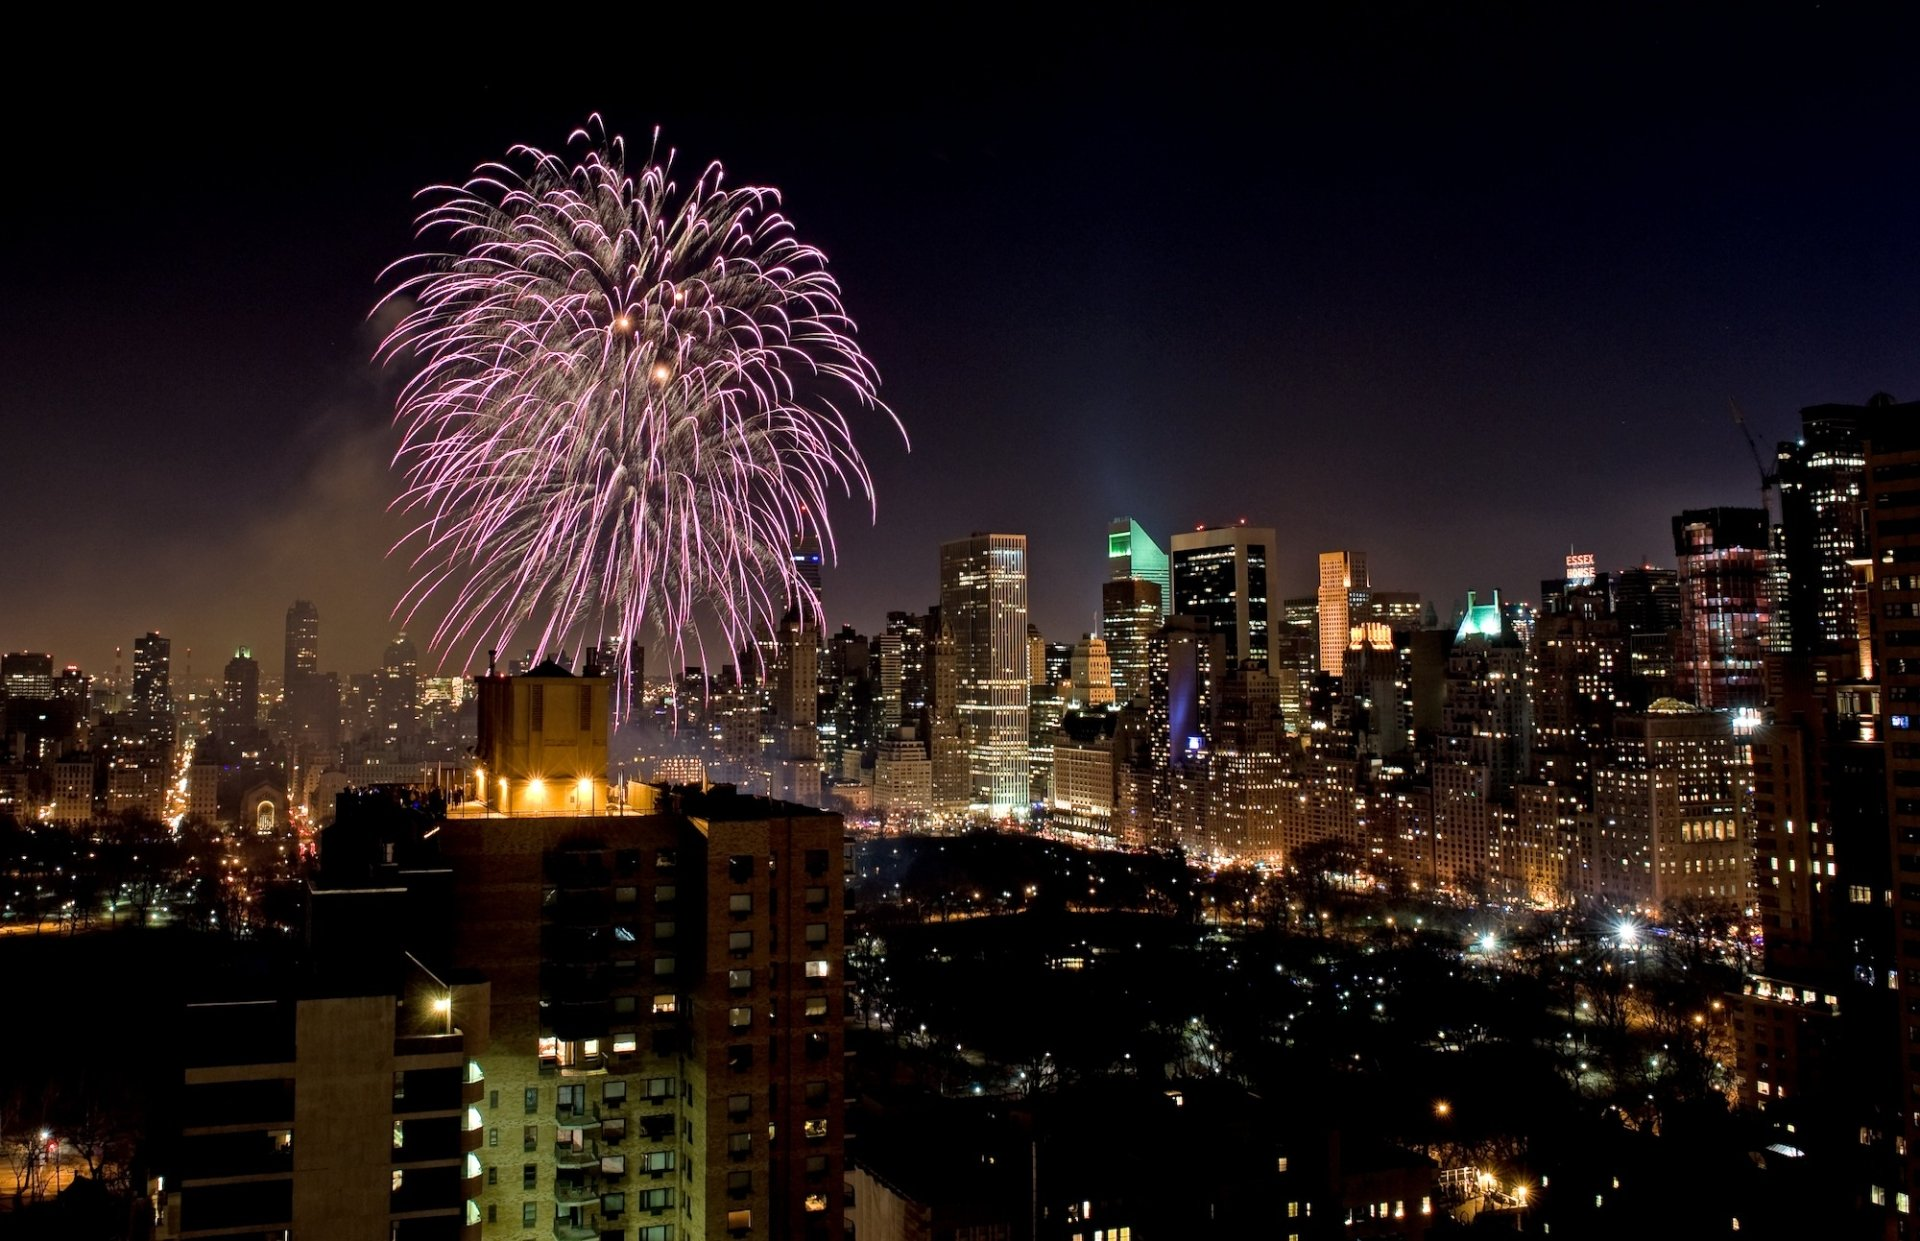 Photography - Fireworks  Night Building Skyscraper New York Wallpaper